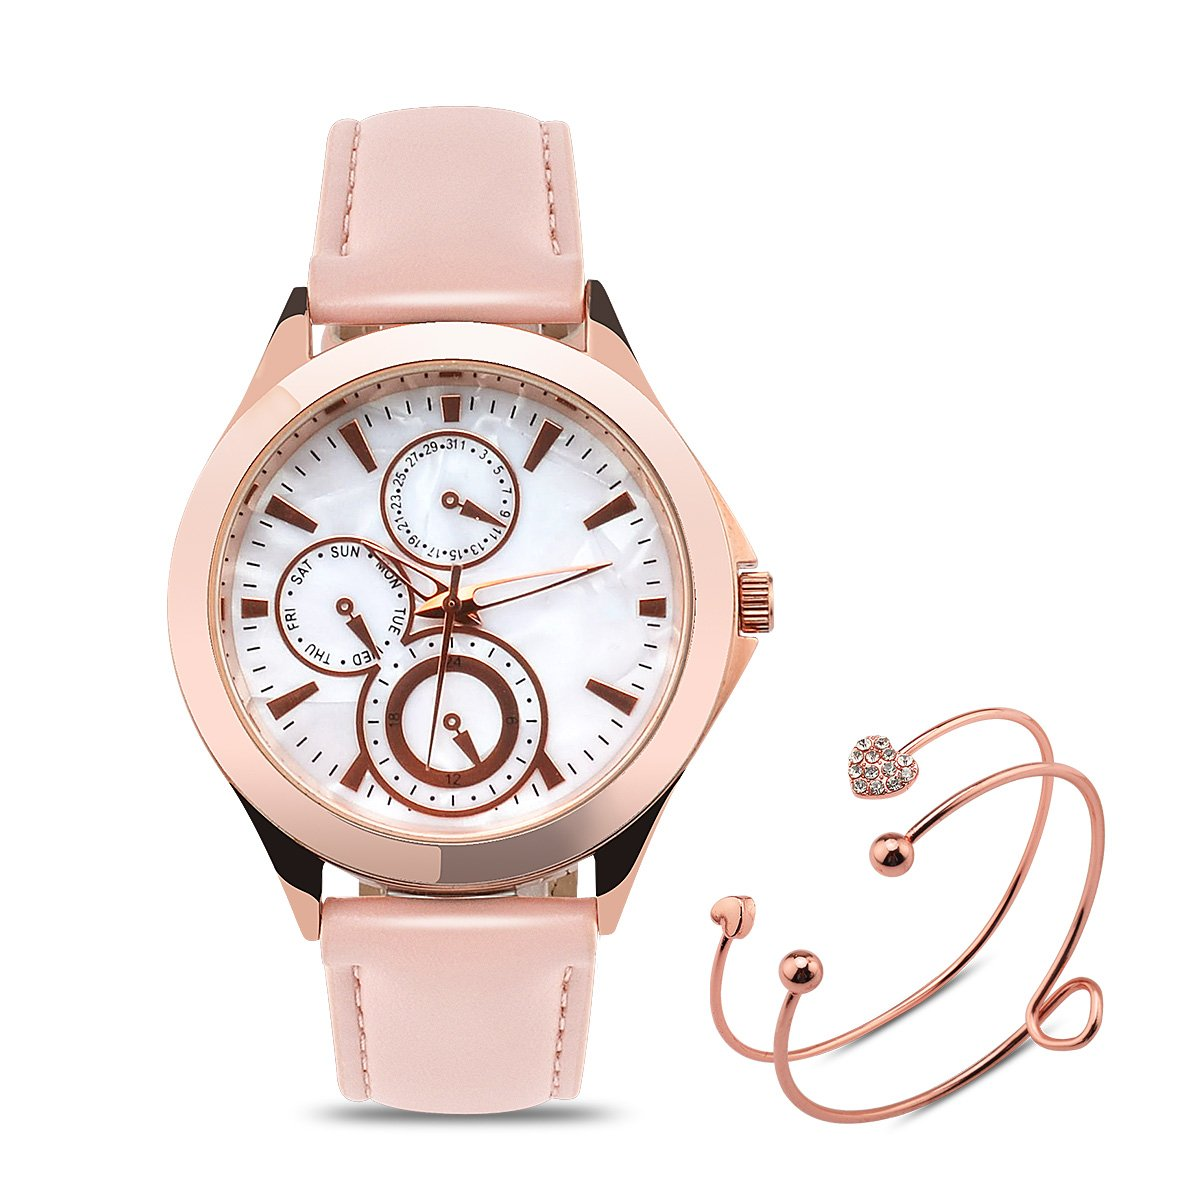 Abrray Women's Watches Mother-of-Pearl Dial with Rose Gold Case Decorative Chronograph Quartz Watch with Packing Box and Exquisite Bracelet by Abrray